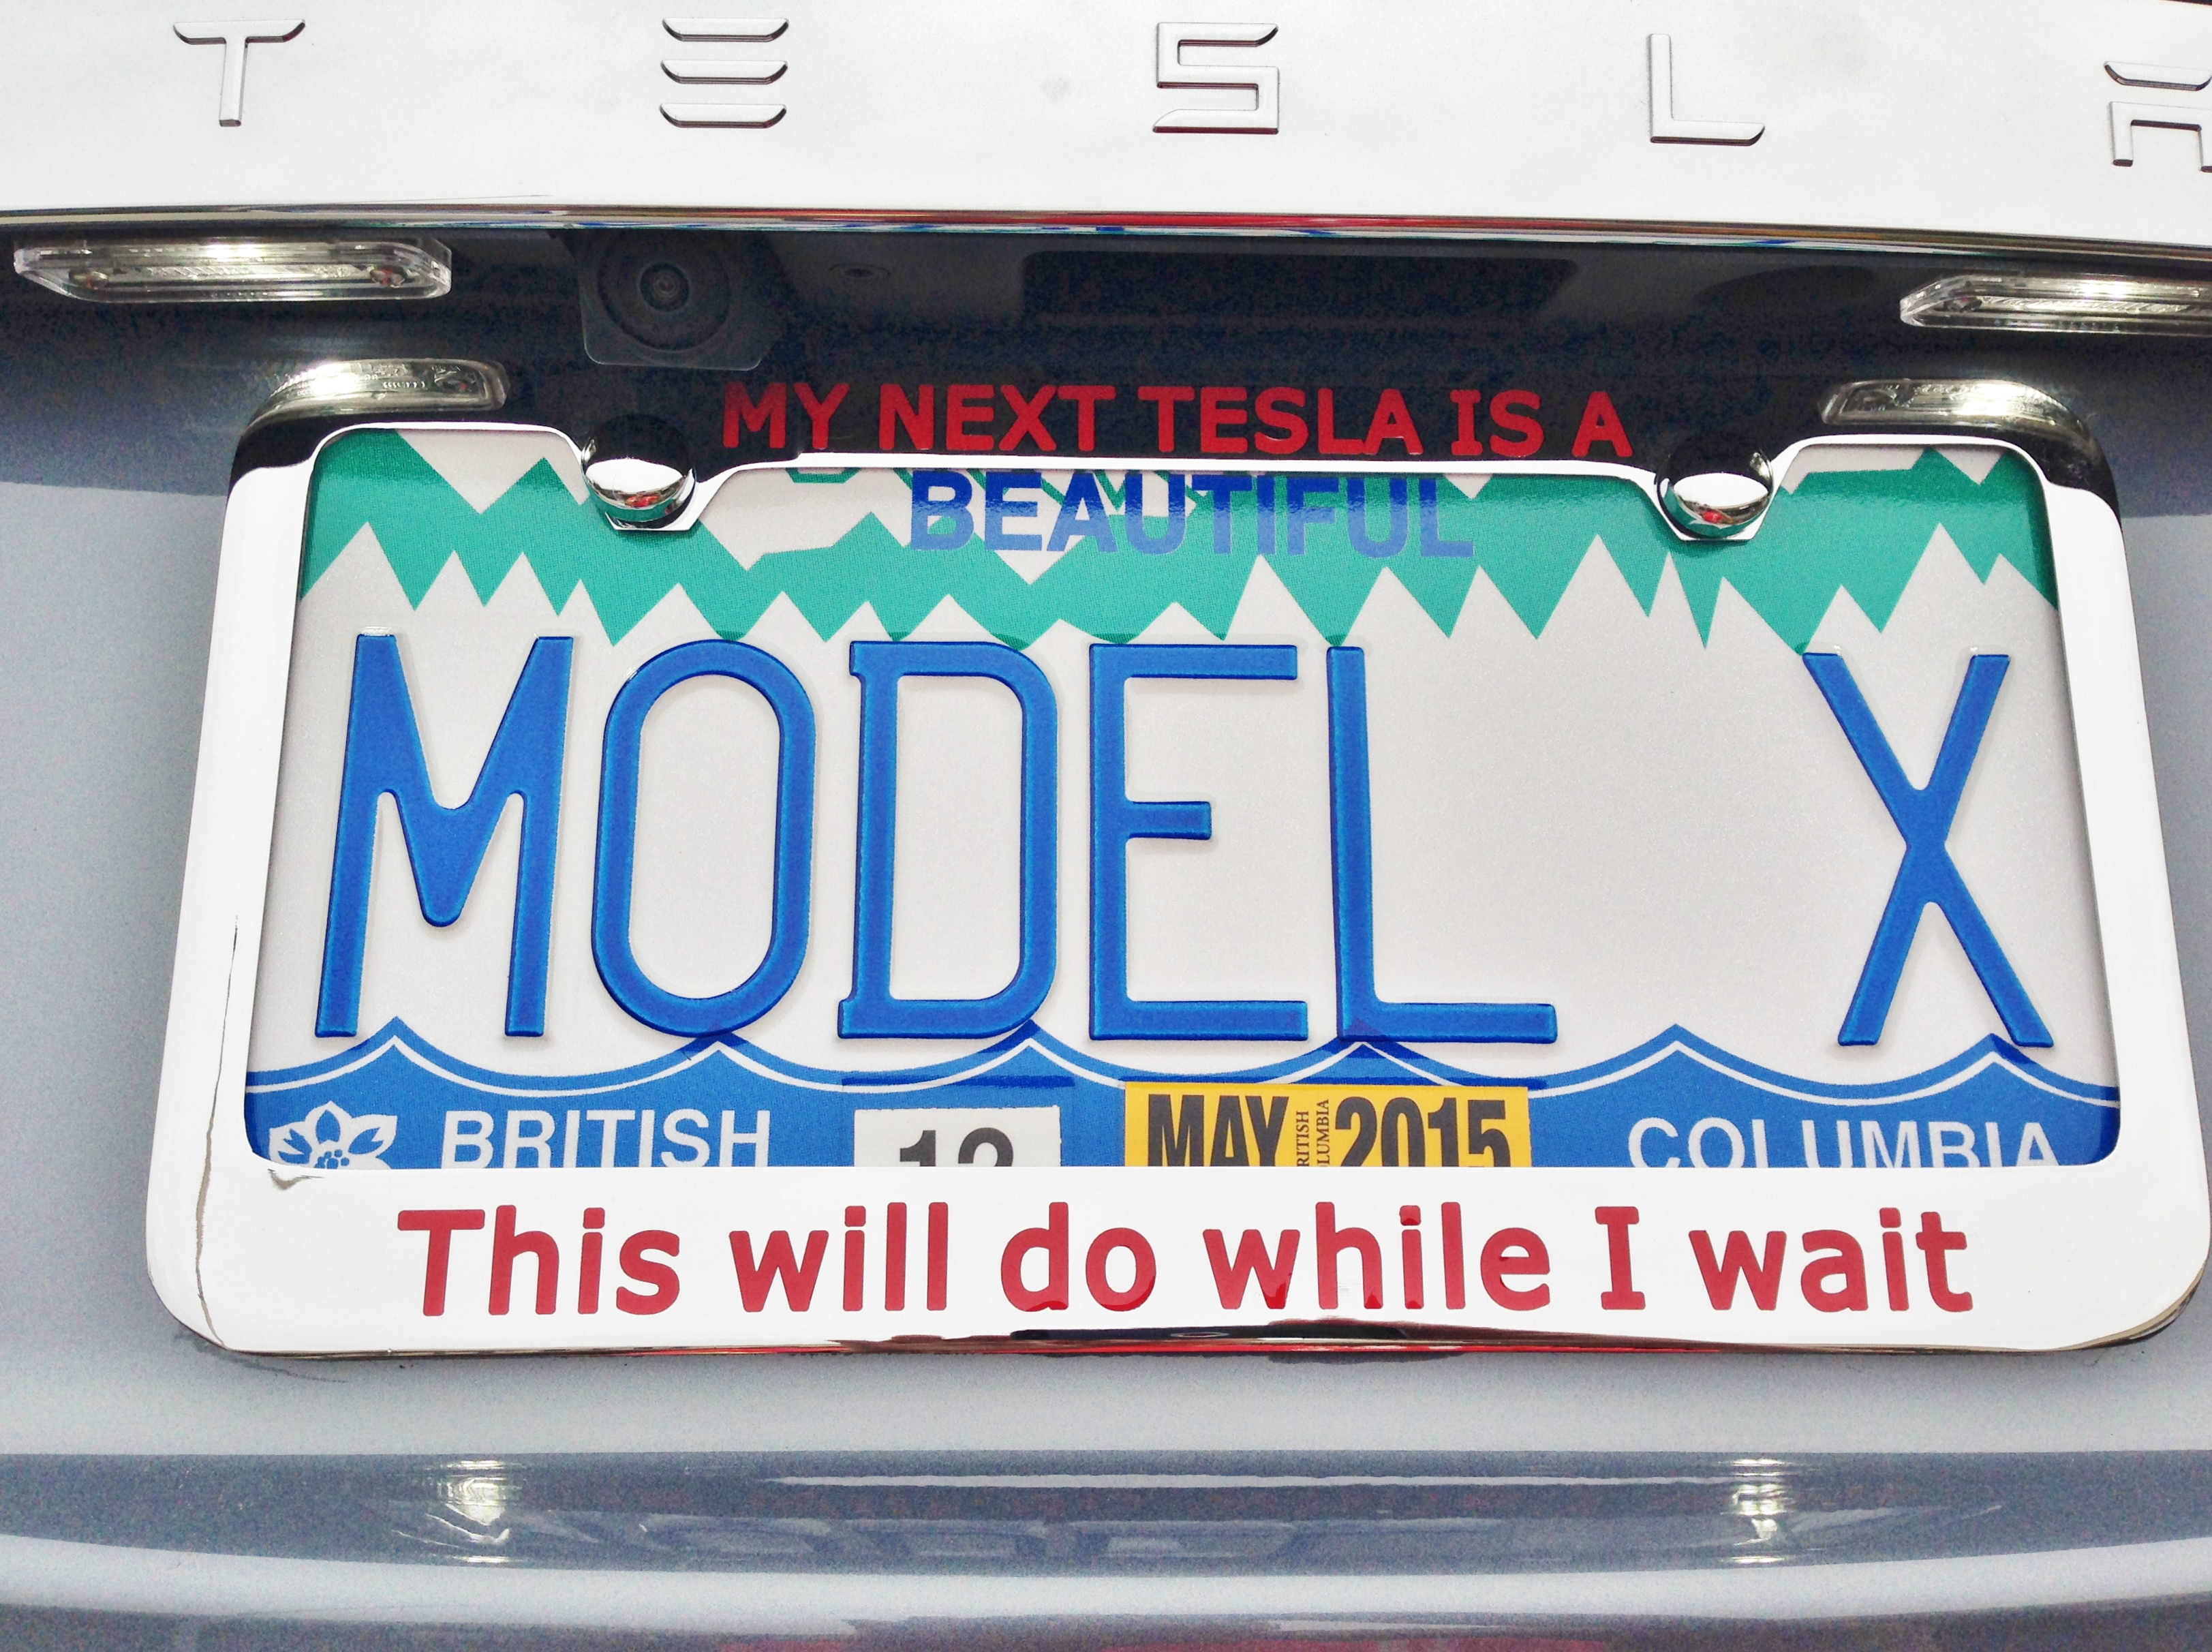 My next Tesla is a Model X. This will do while I wait.jpg